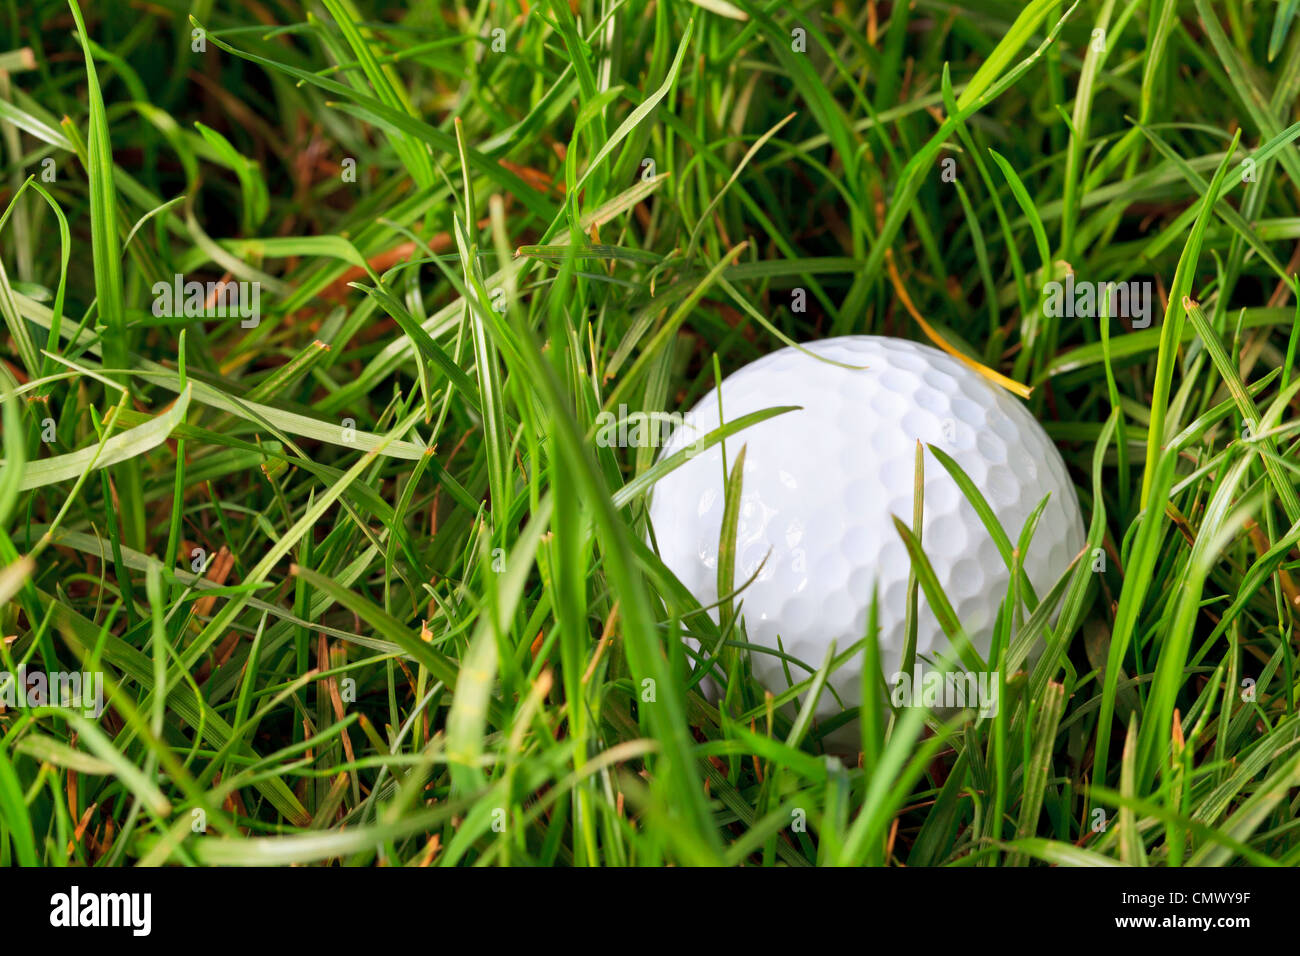 Photo of a golf ball lying in the rough grass - Stock Image